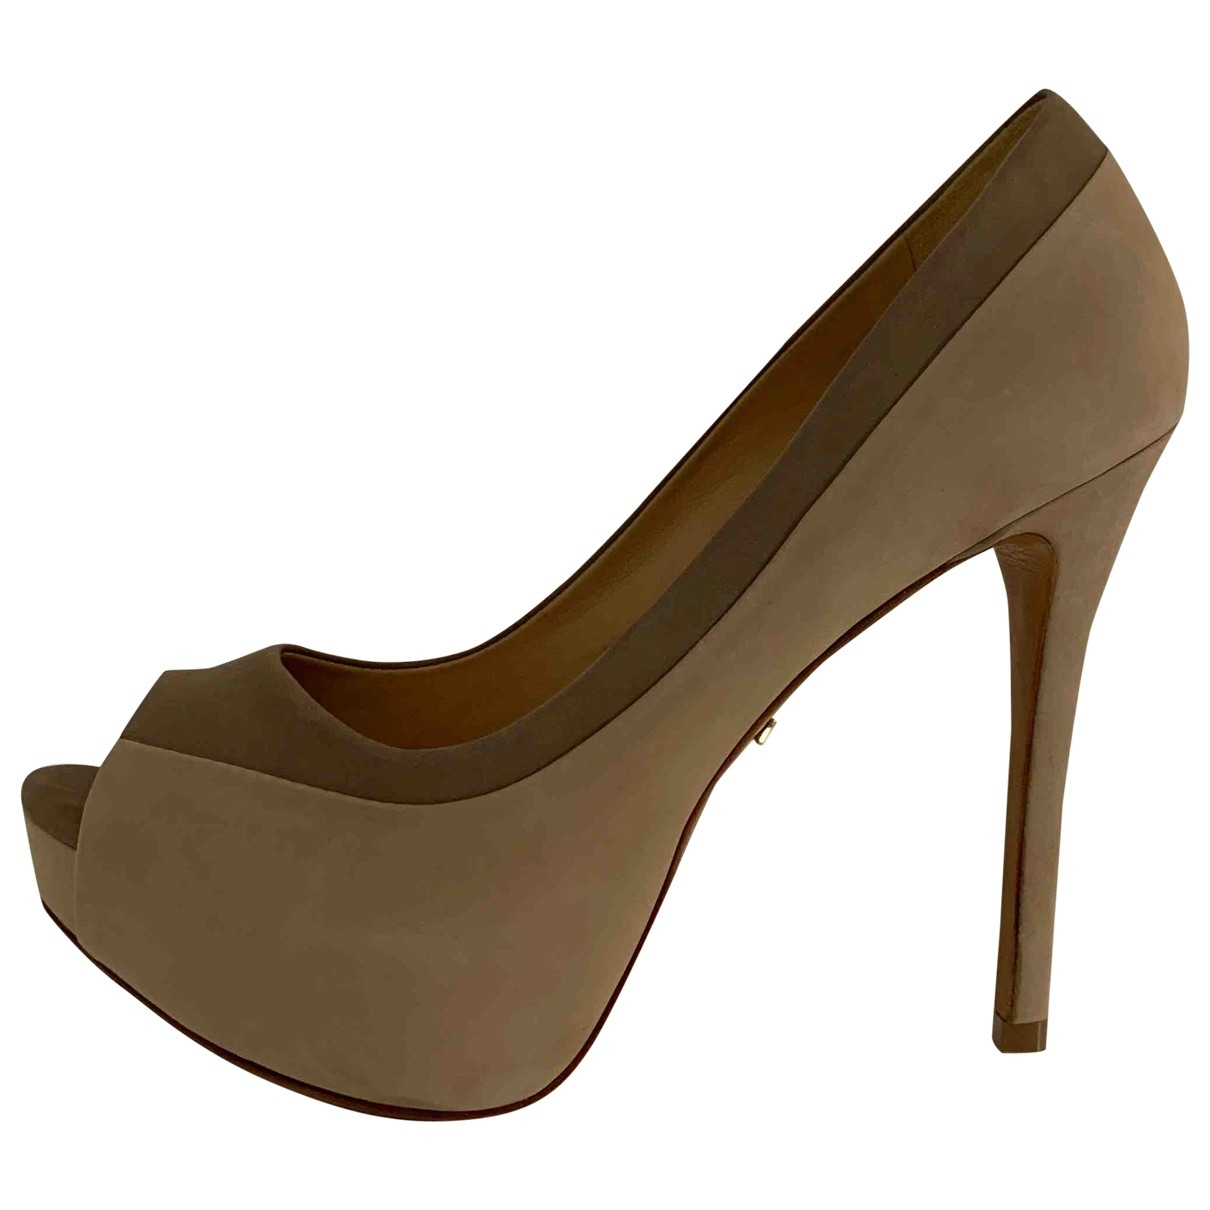 Schutz \N Beige Suede Heels for Women 40 EU